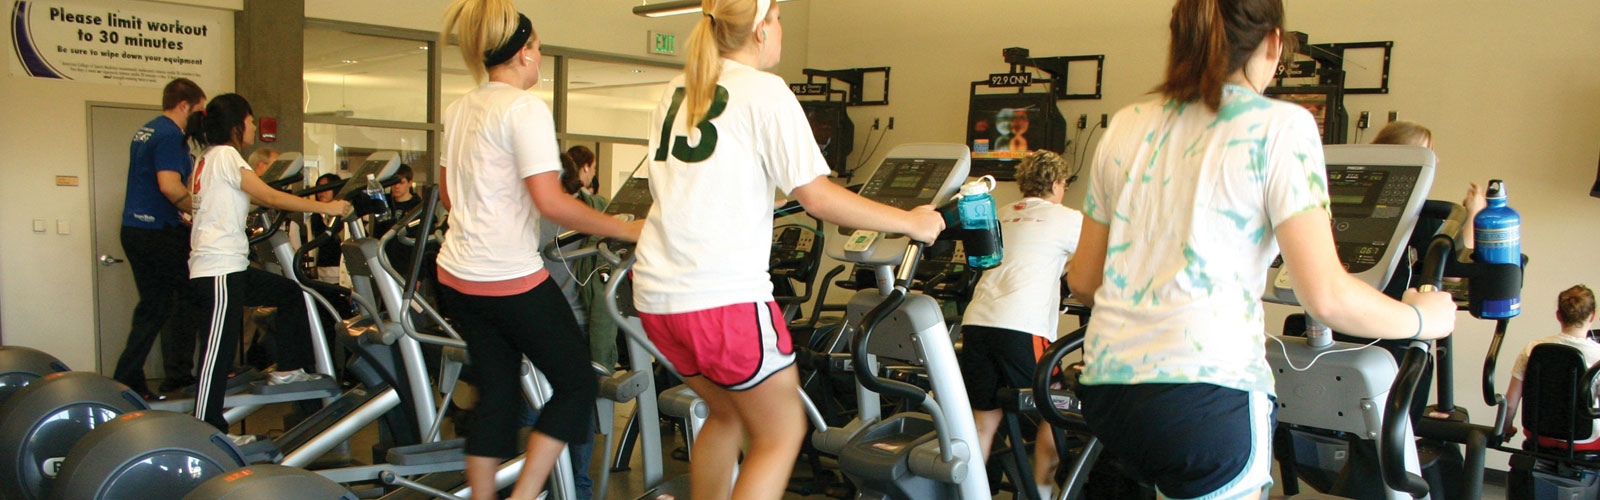 3 students on treadmills